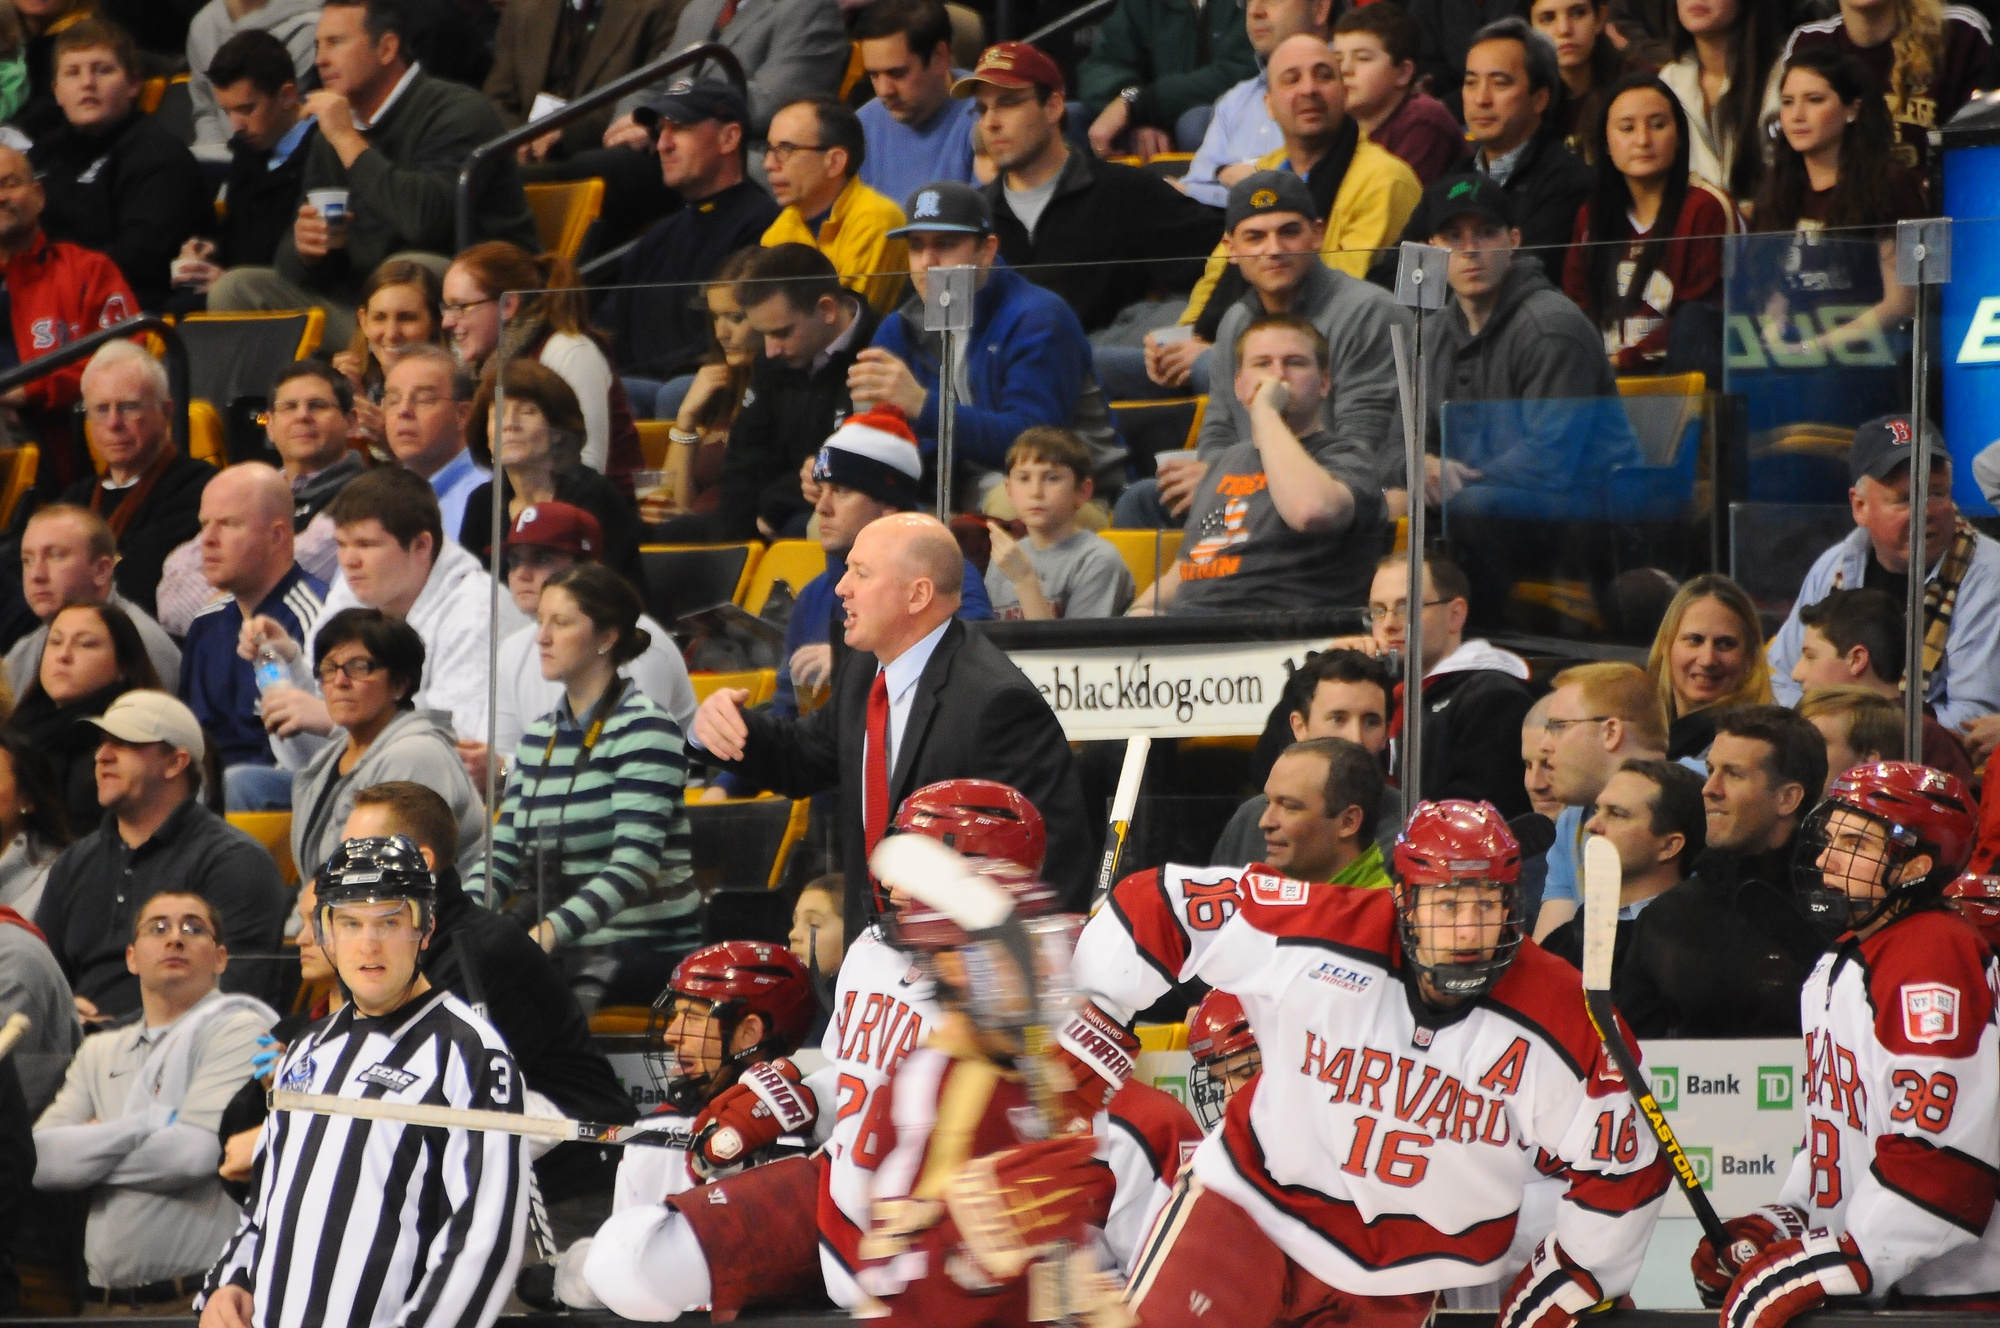 Ted Donato gets animated during a 2013 Beanpot semifinal loss to Boston College.